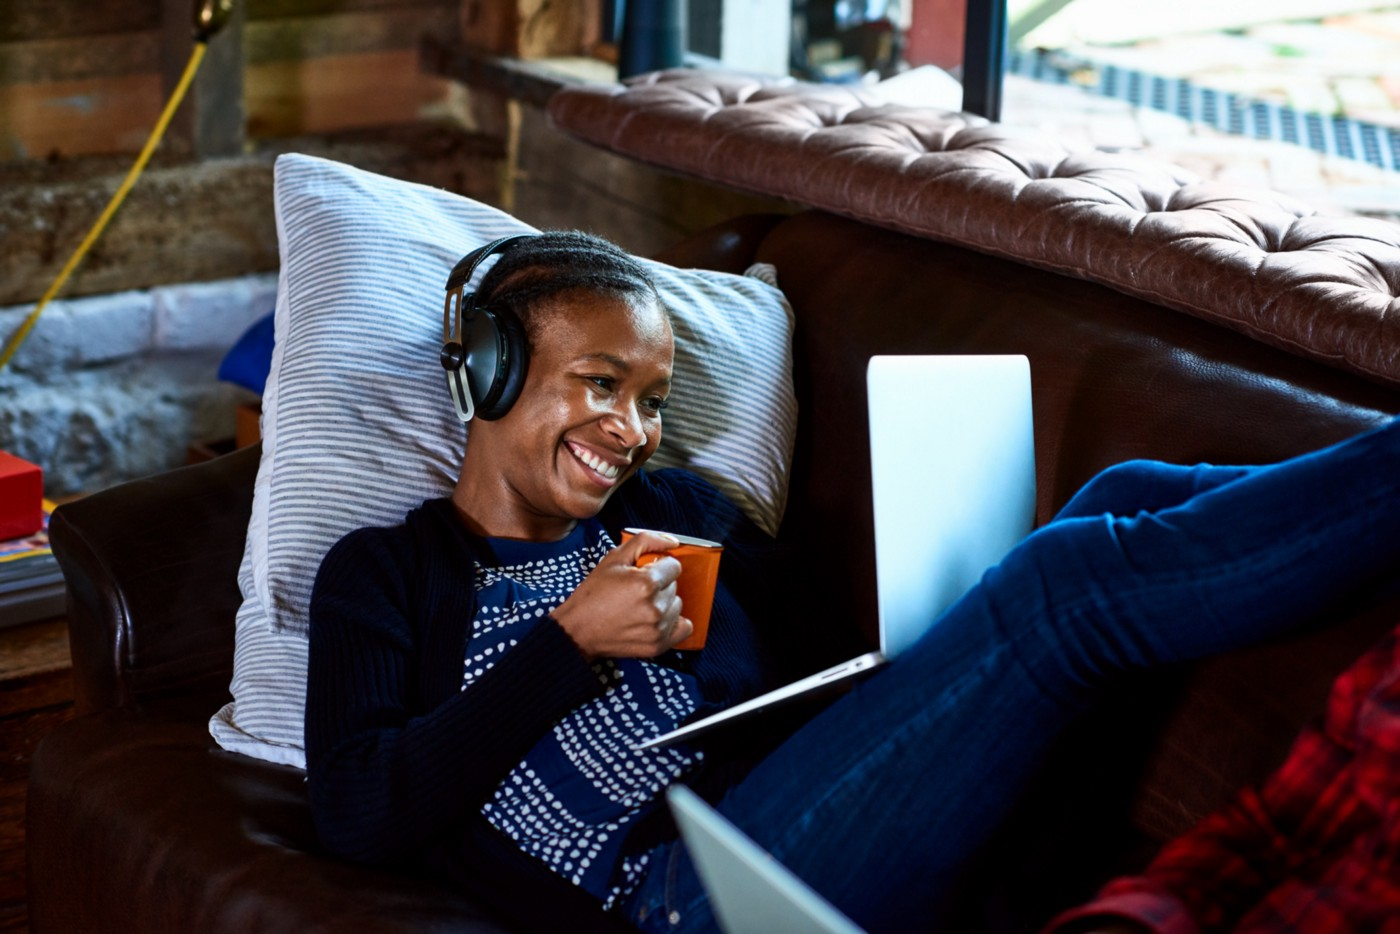 Smiling Black woman with headphones on looking at her computer with a cup of coffee in her hand.